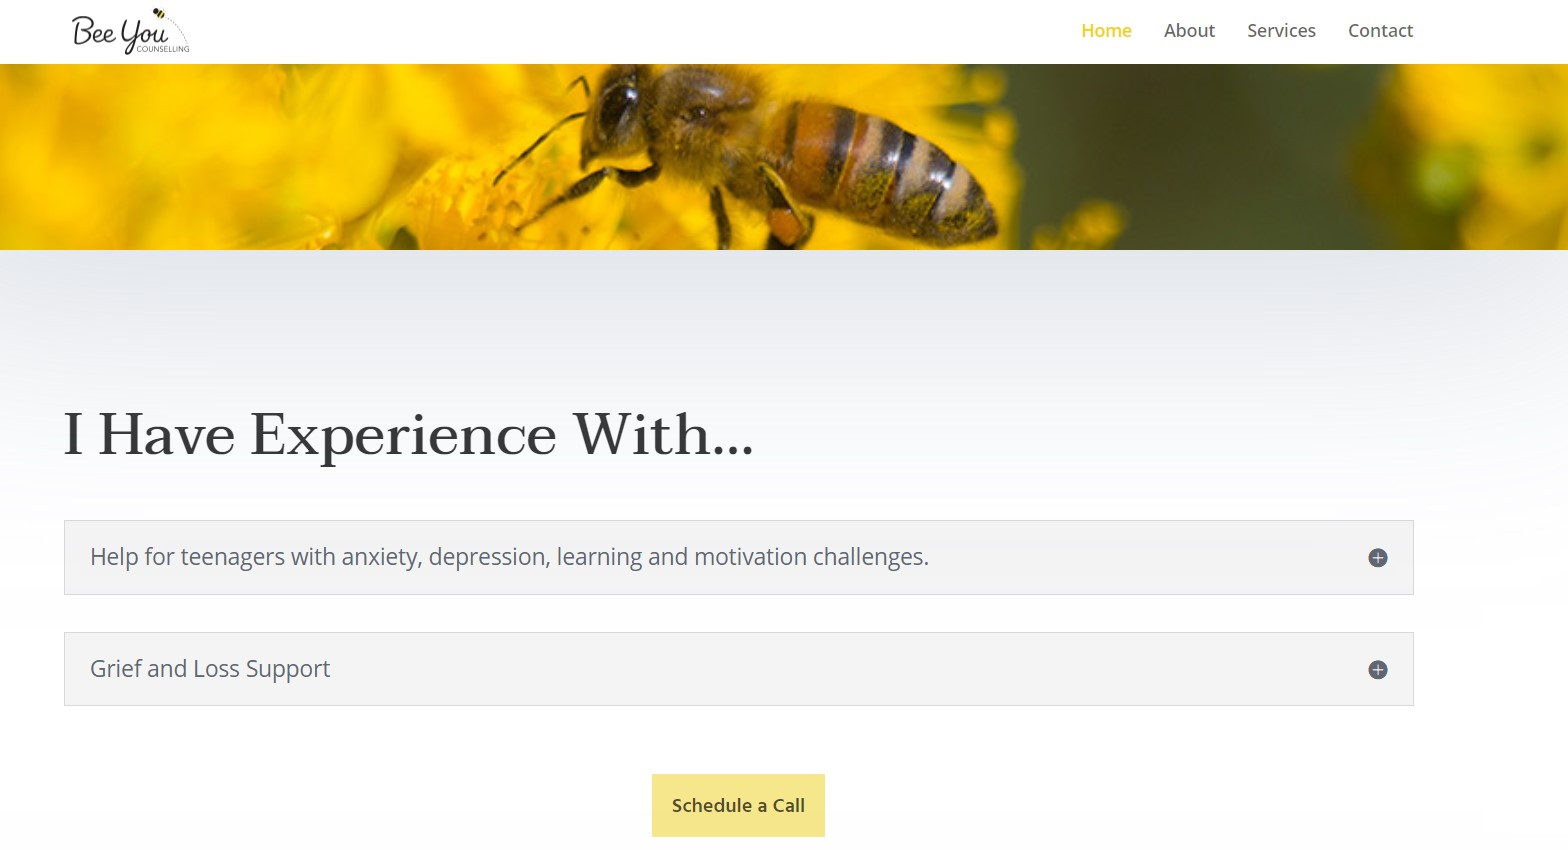 Somers Design - Bee You Counselling